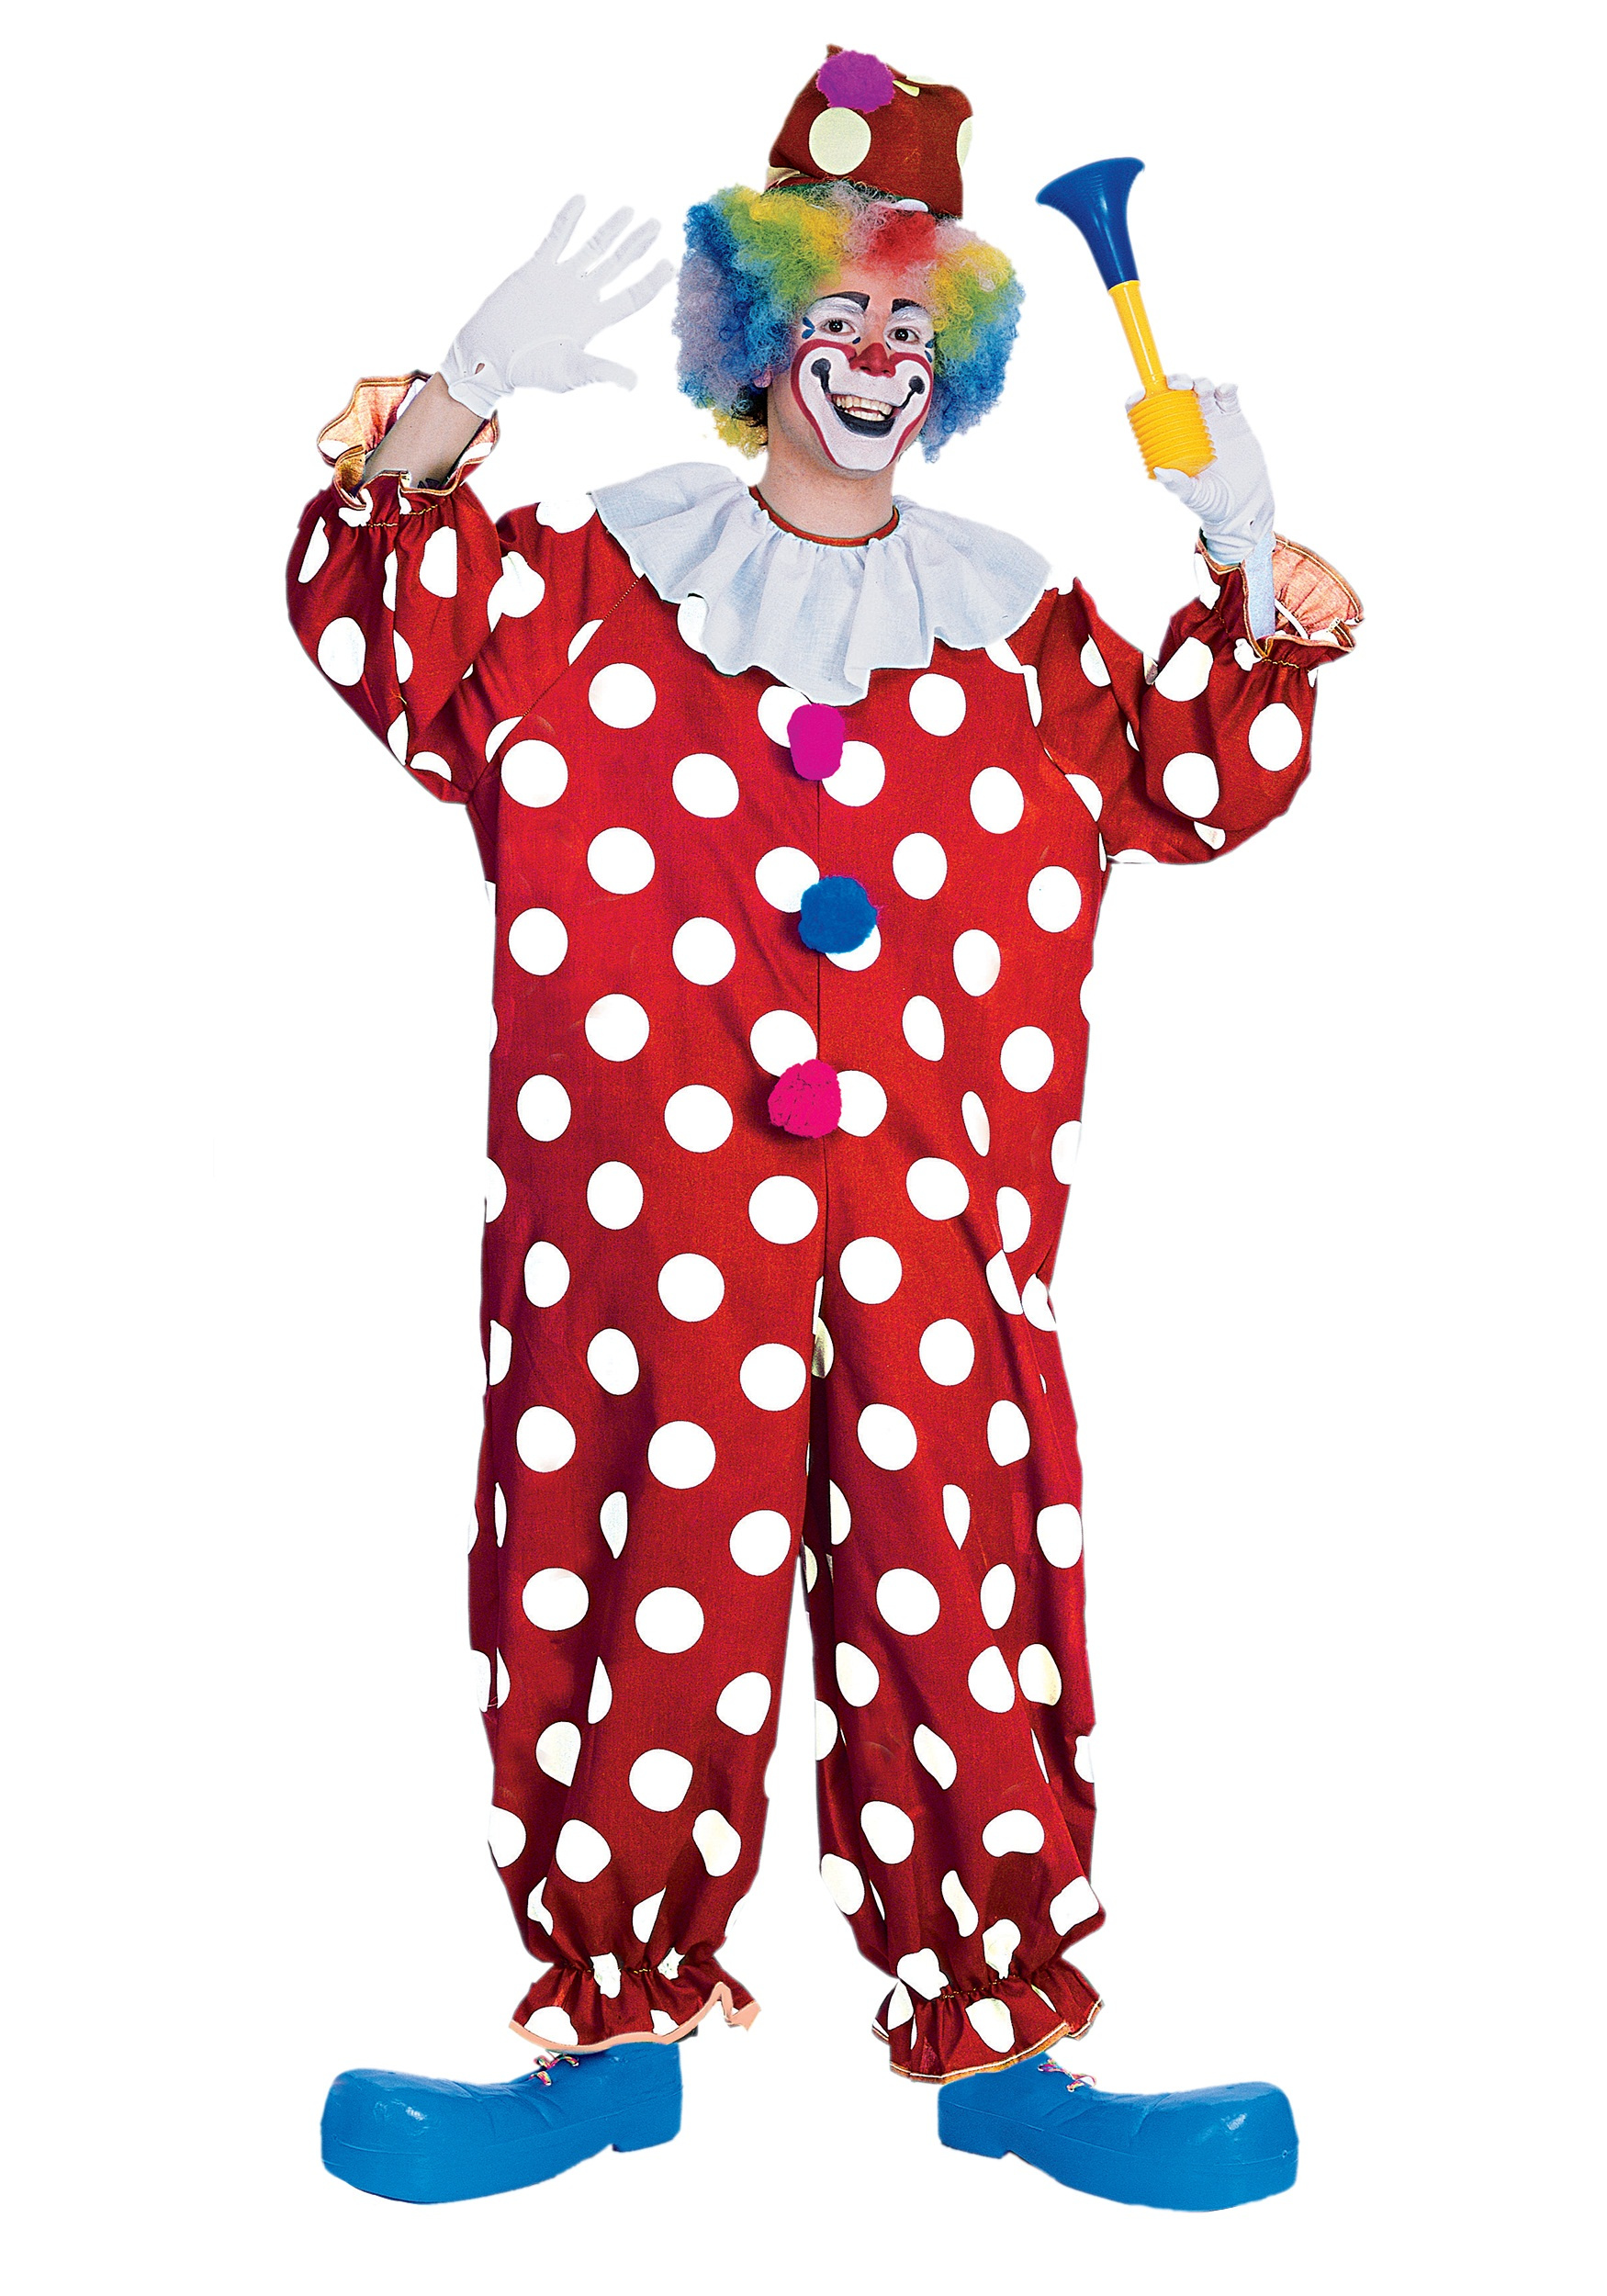 Dotted Party Clown Costume  sc 1 st  Halloween Costume Ideas & Dotted Party Clown Costume - Circus Costume Ideas